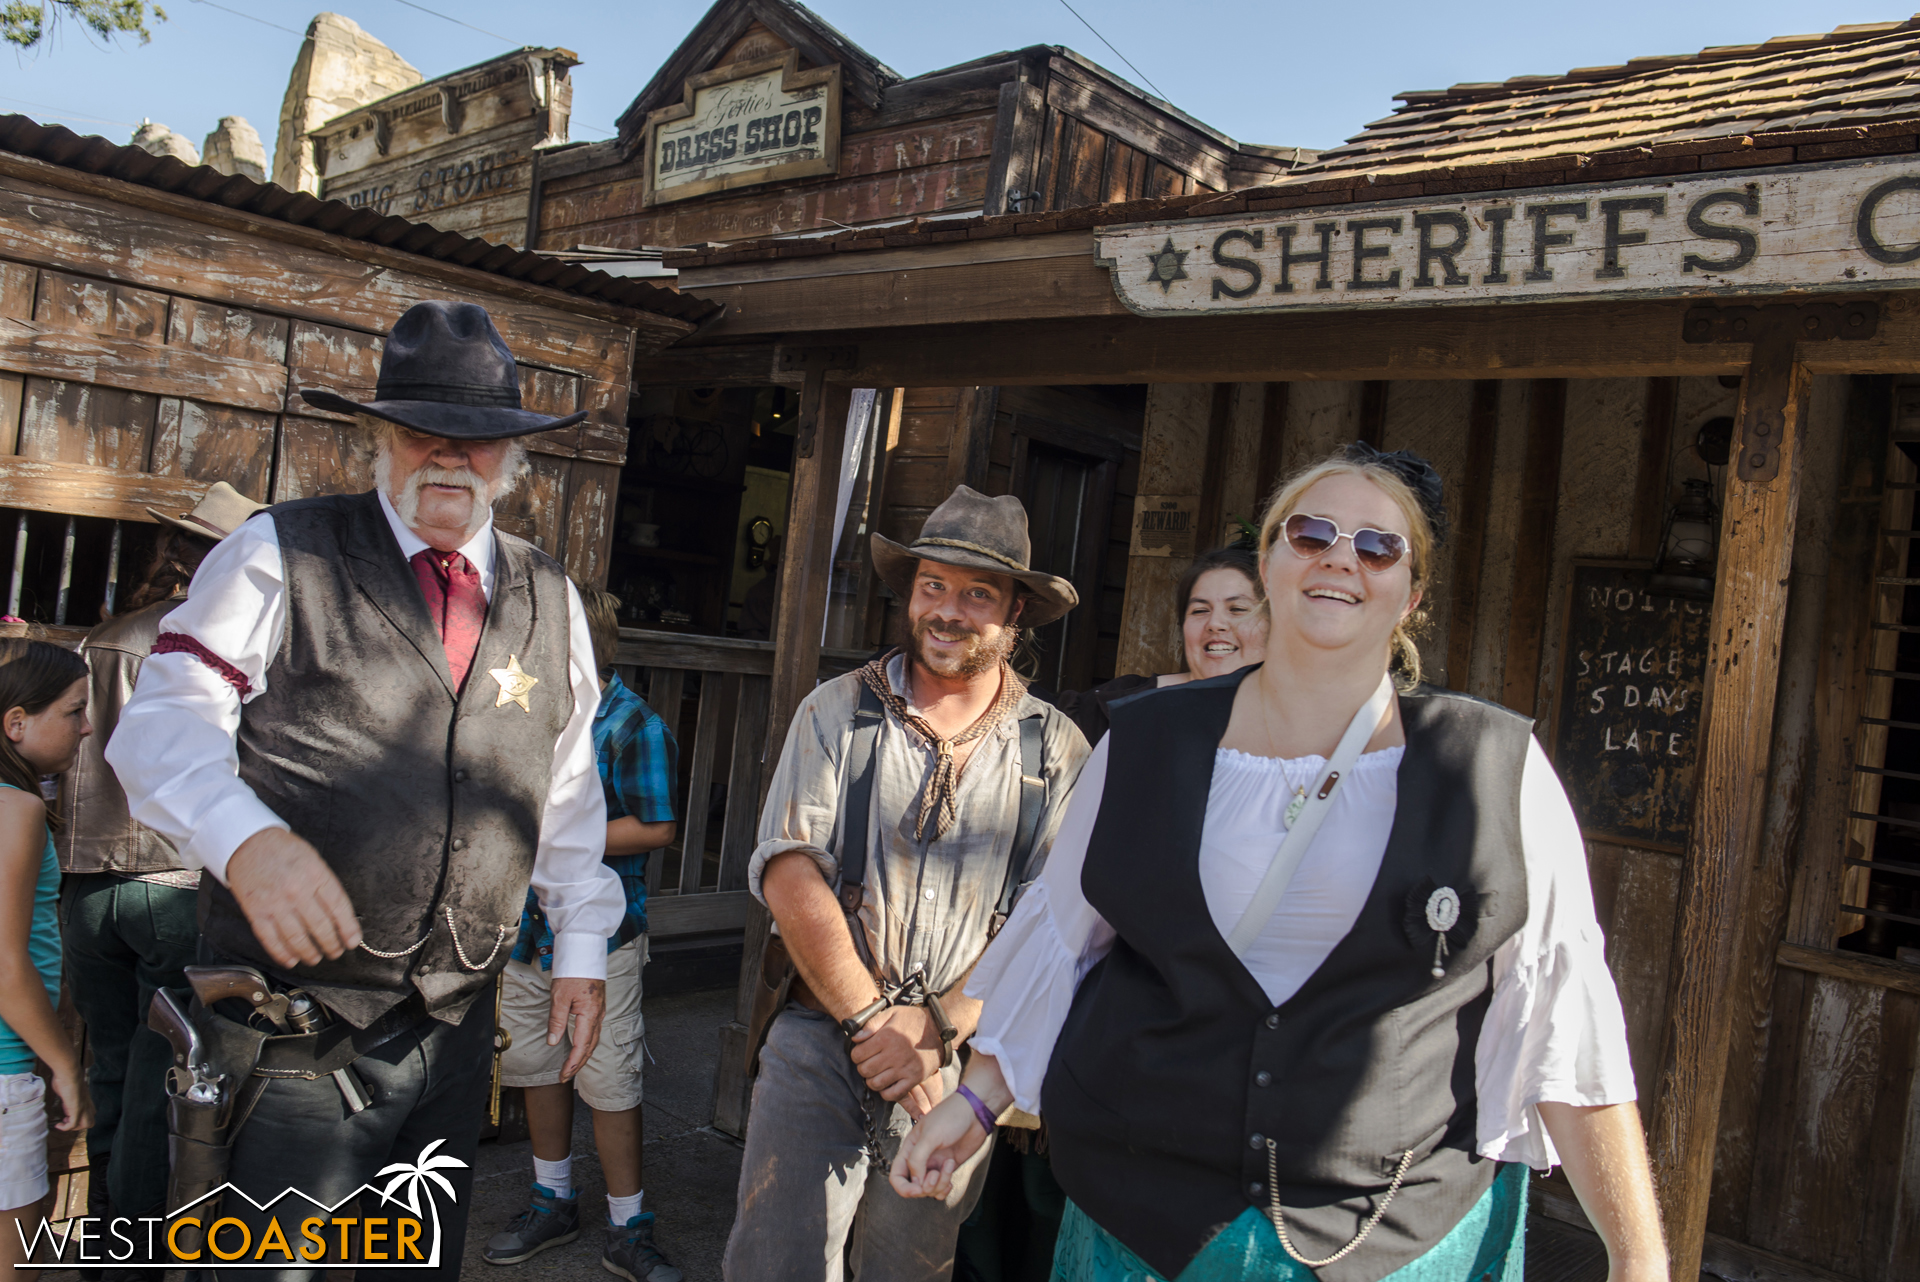 Later in the afternoon, Tiny Mayfield was temporarily released to an honorary citizen deputy and paraded around Calico as an example of the consequences of criminality.